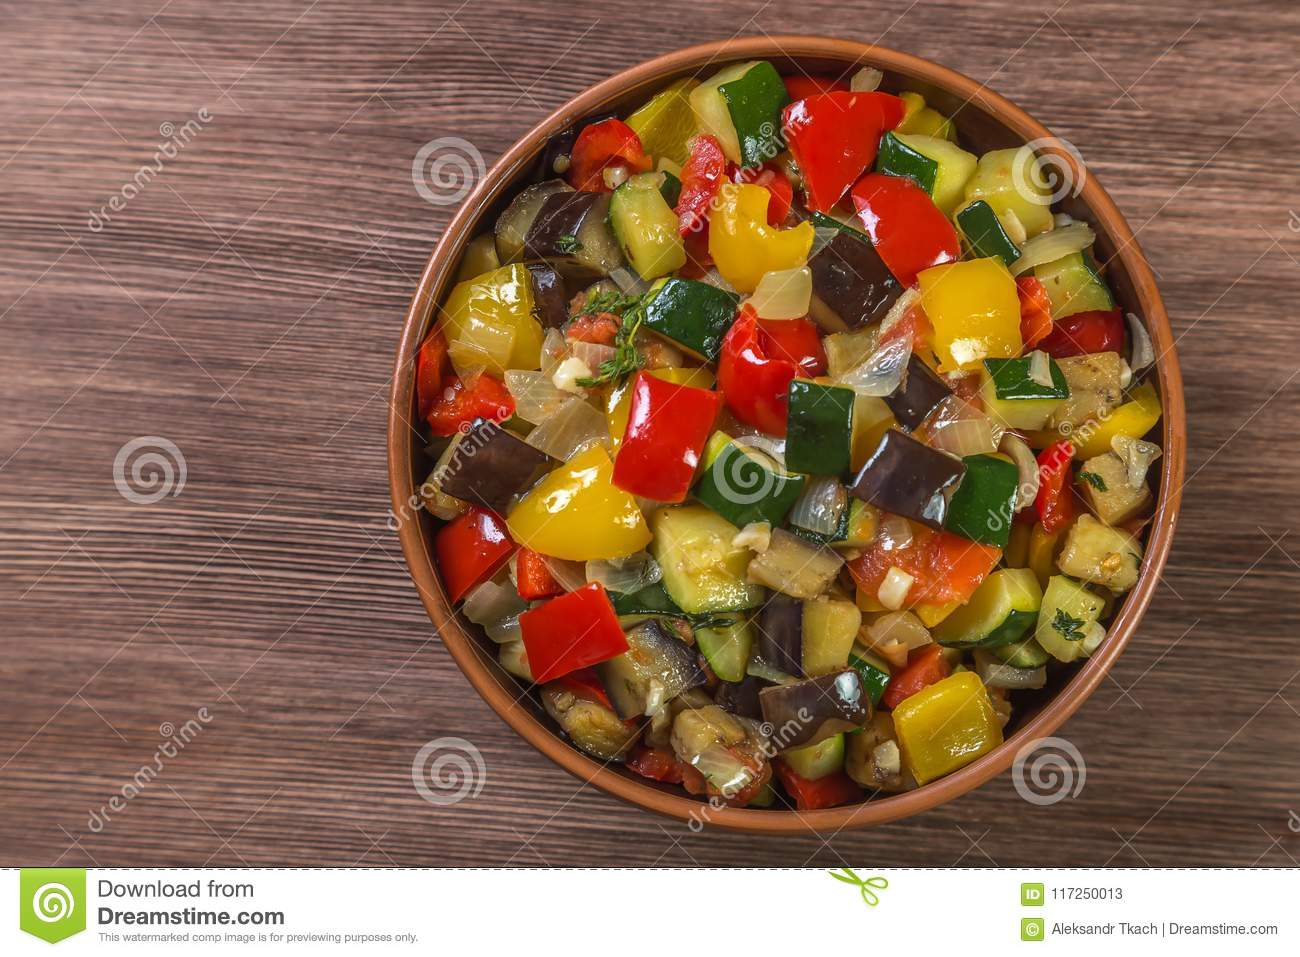 Provencal dish Ratatouille in a pot made of ceramics on the table made of oak planks. Brown. Proper nutrition and diet concept. Br